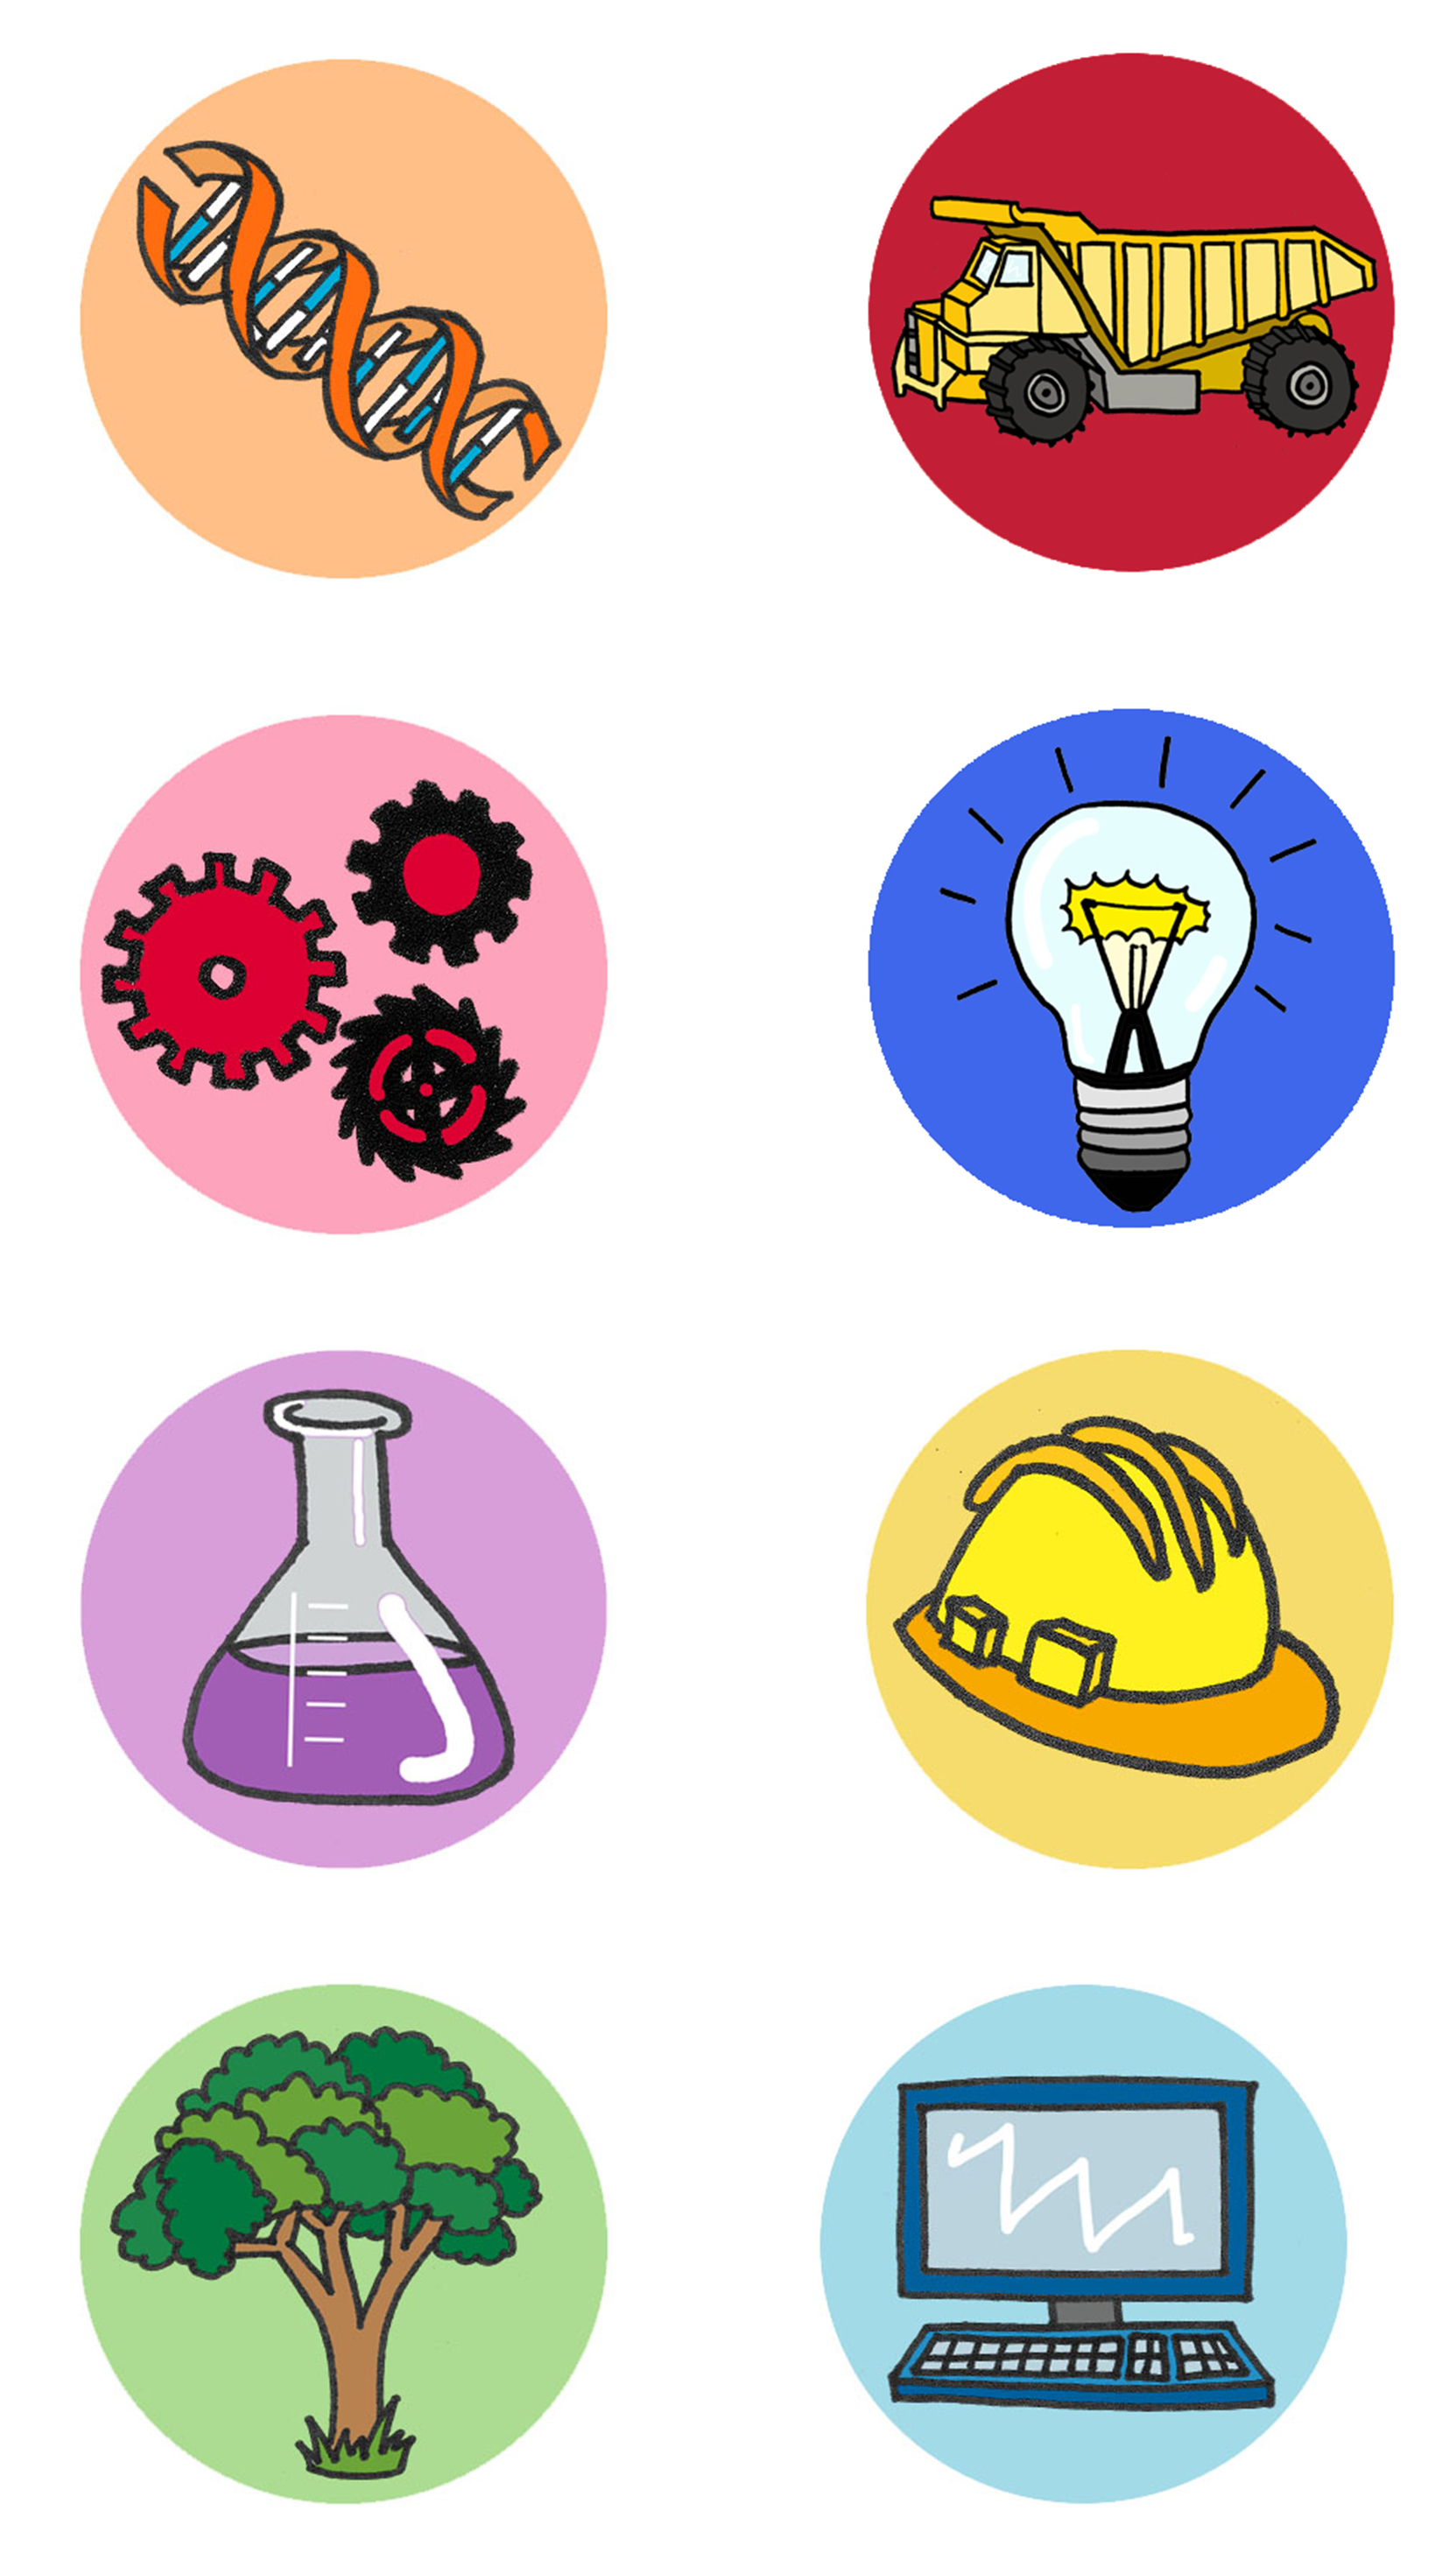 Icons for Girls in Engineering campaign